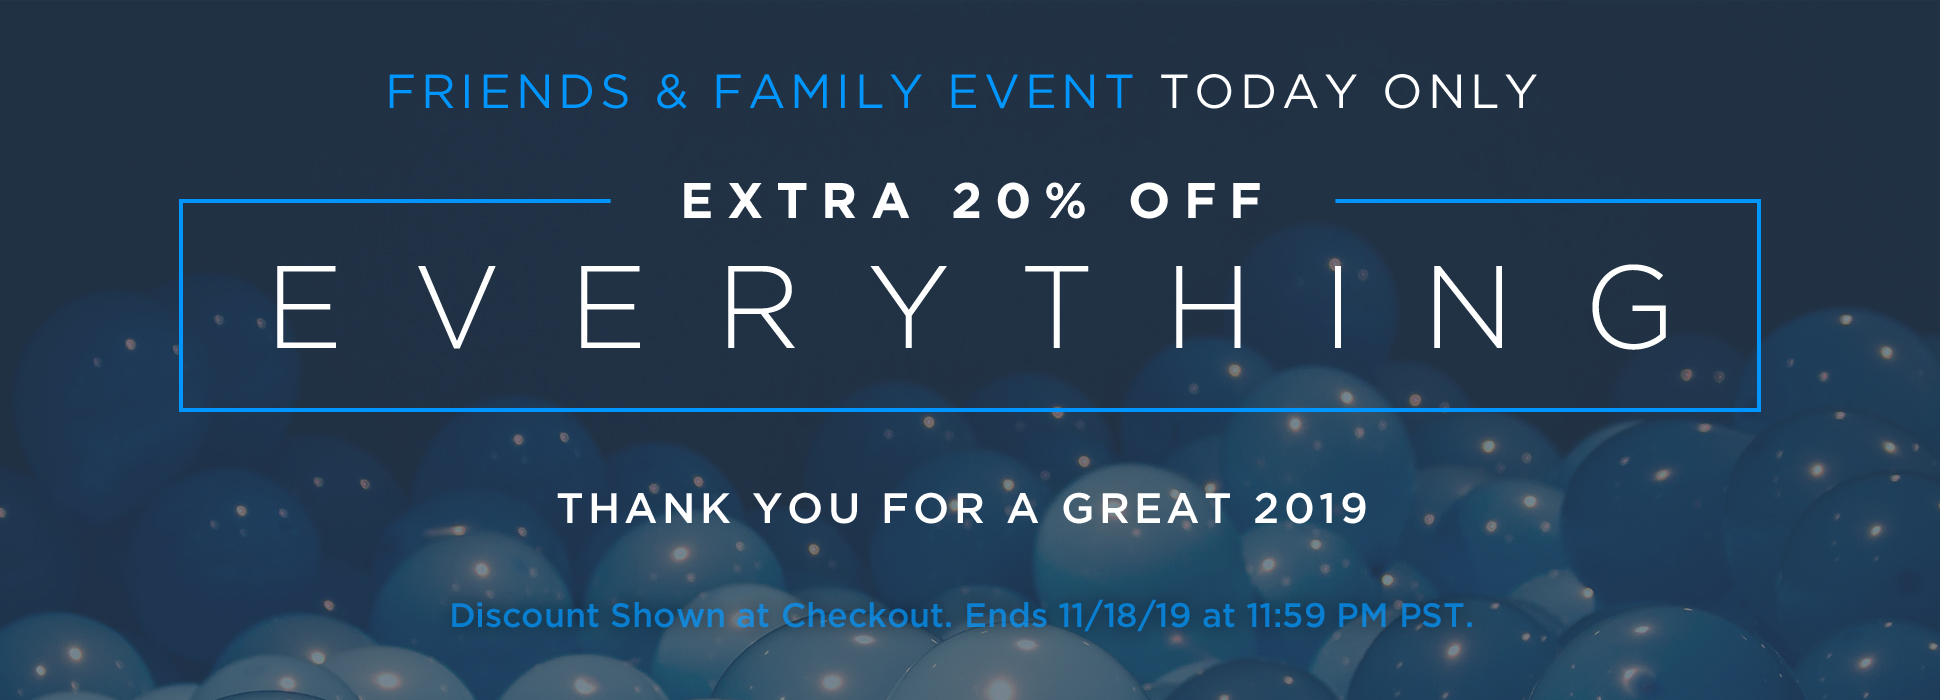 Friends & Family 20% Off Sitewide (Promo + Banner)